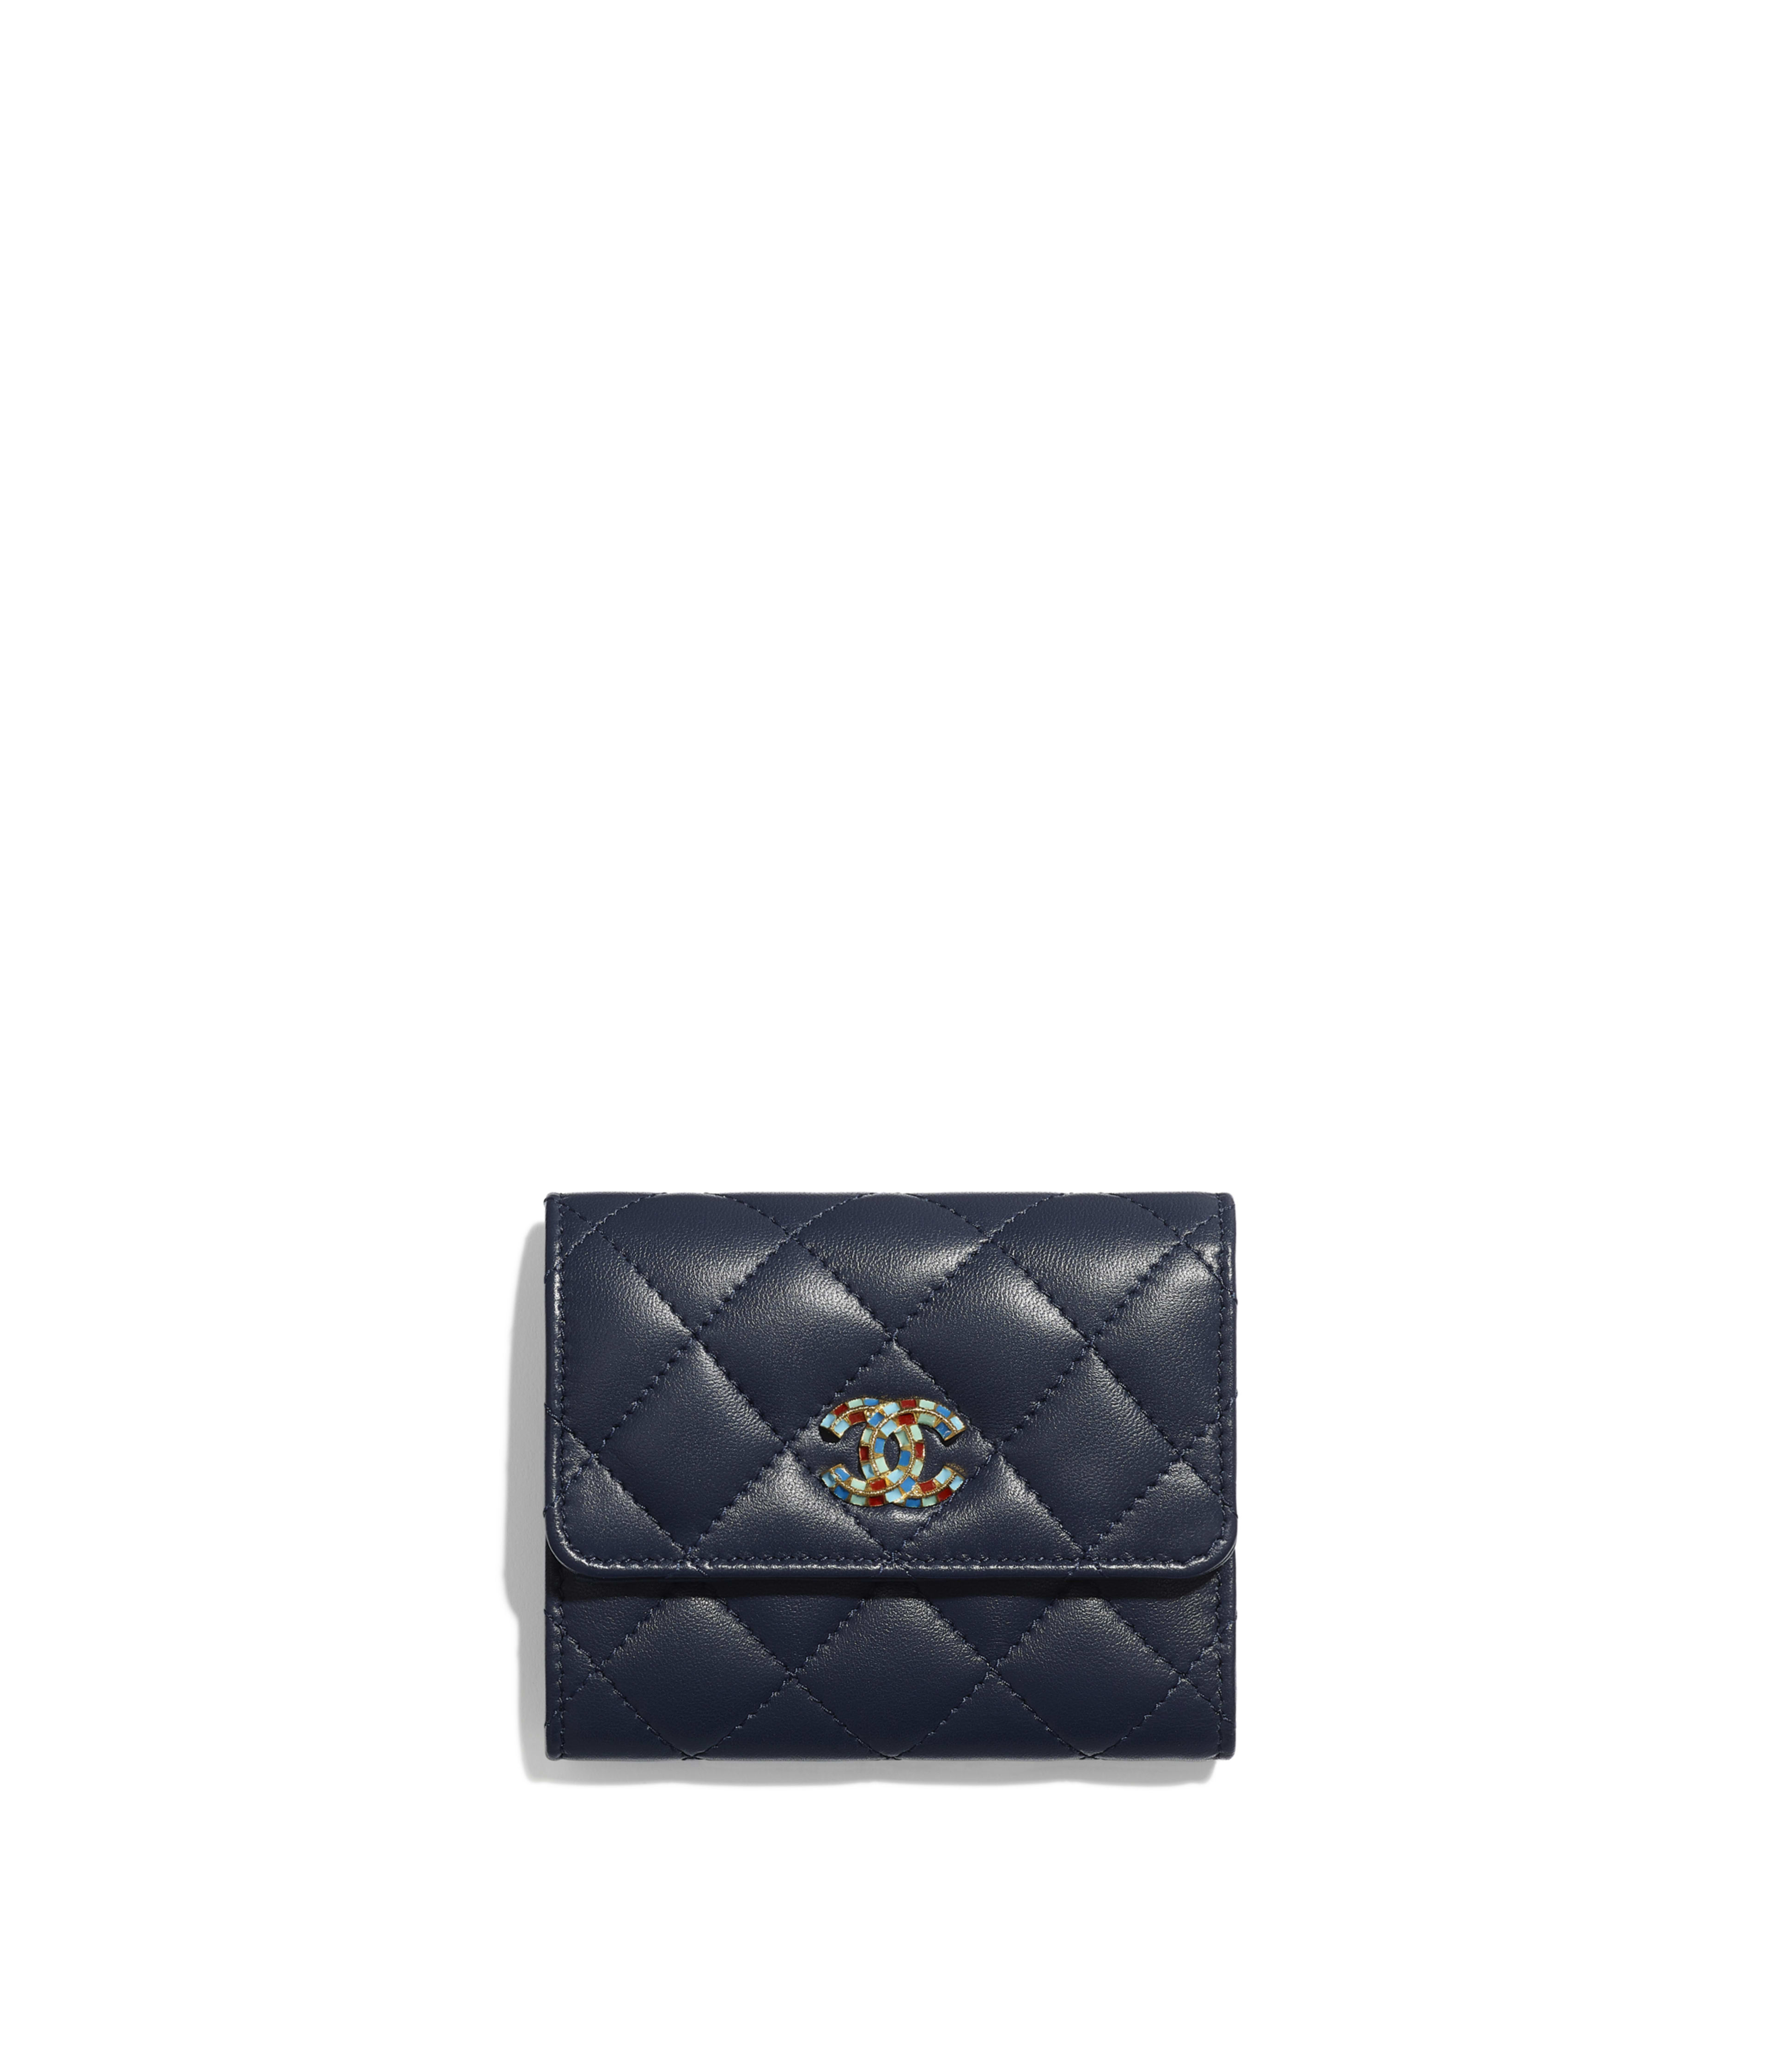 ac8146a545 Small Flap Wallet Lambskin & Gold-Tone Metal, Navy Blue Ref.  AP0522B00866N4713